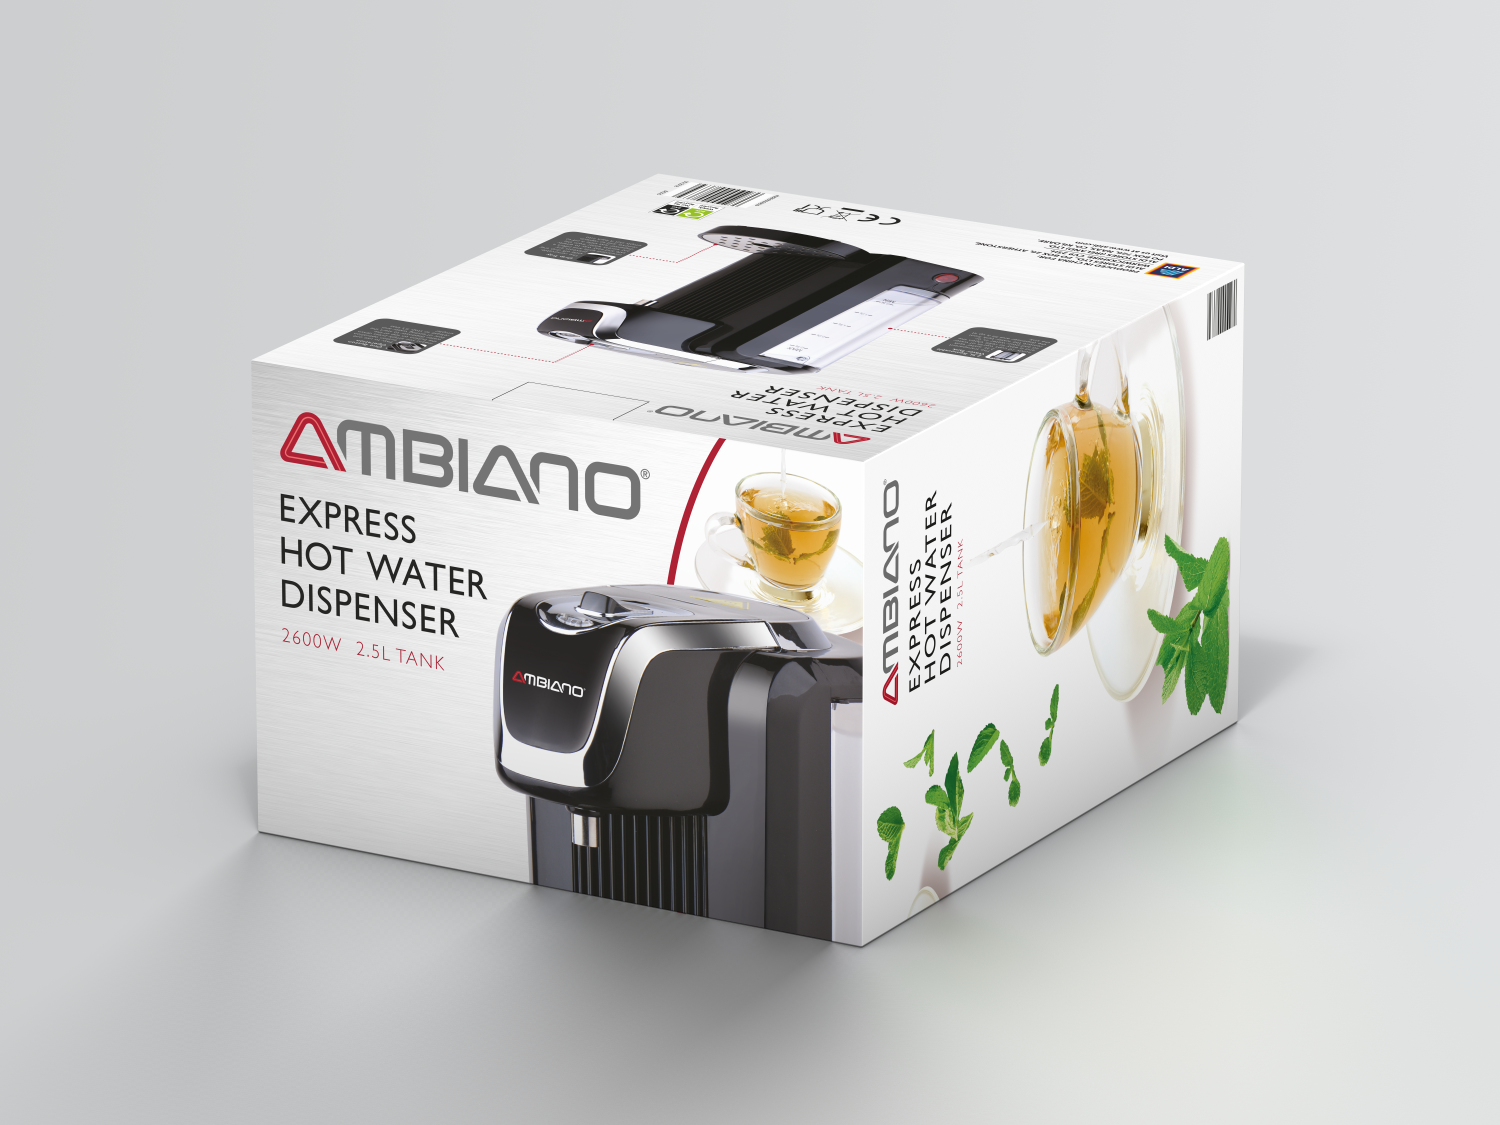 Aldi Ambiano hot water dispenser packaging design top